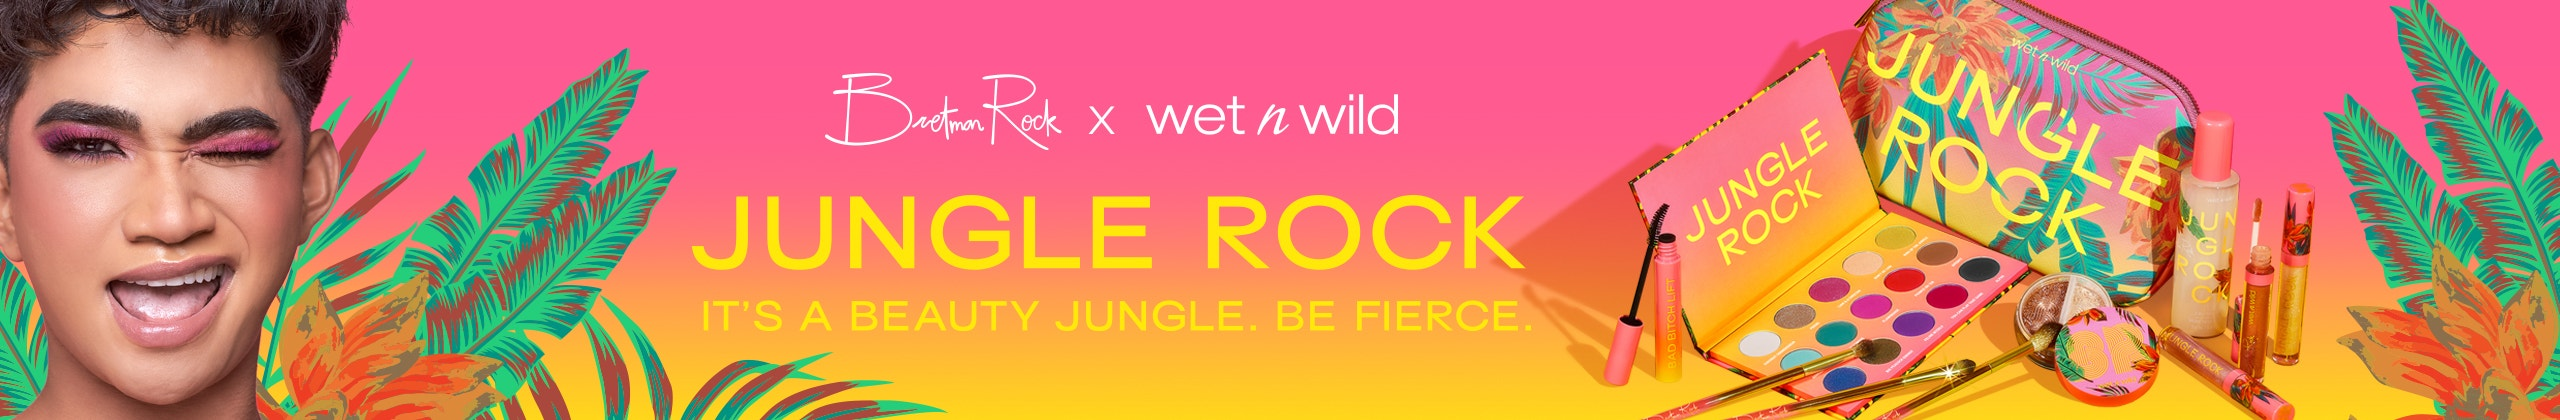 Jungle Rock